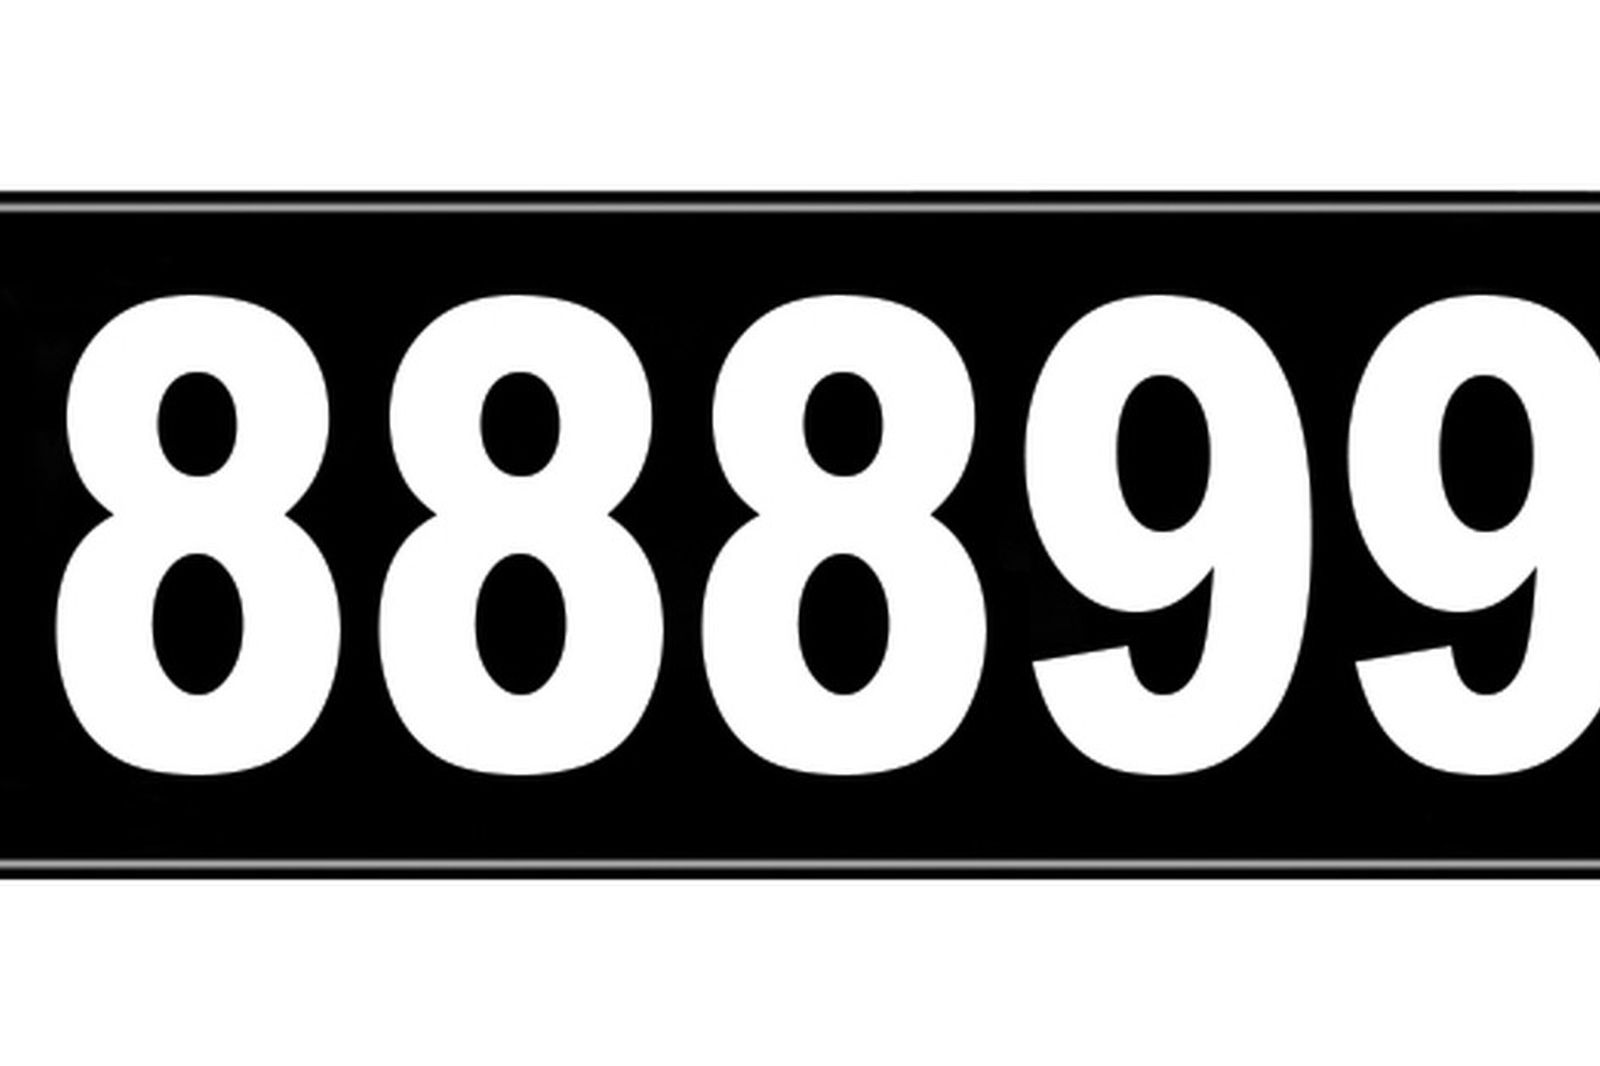 Number Plates - NSW Numerical Number Plates '88899'